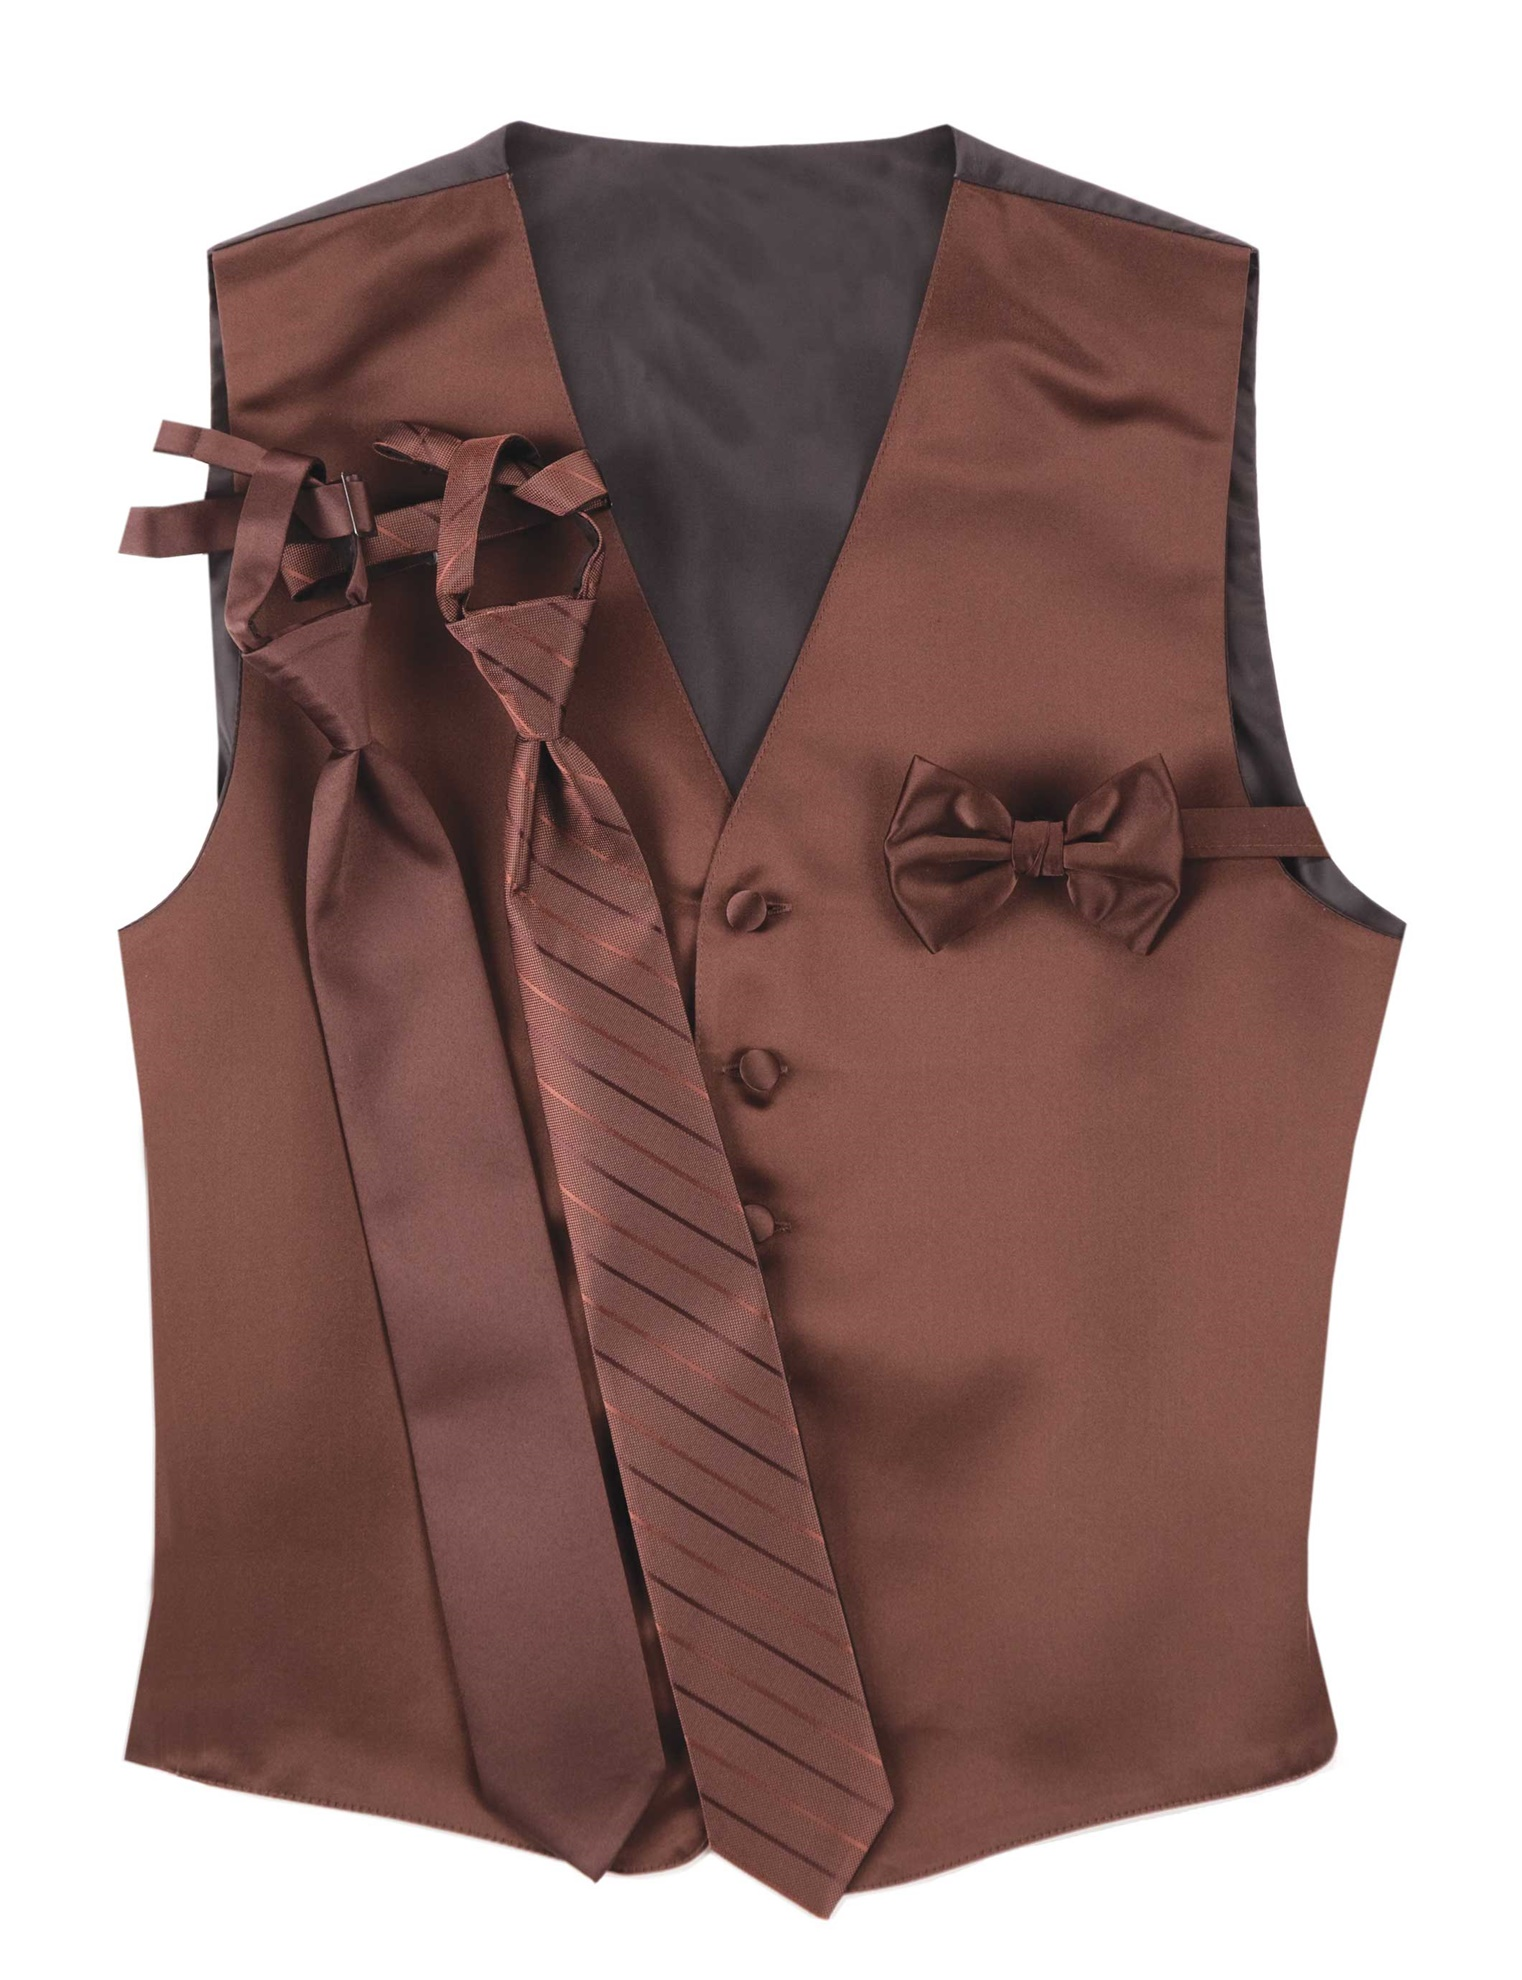 Color: Chocolate